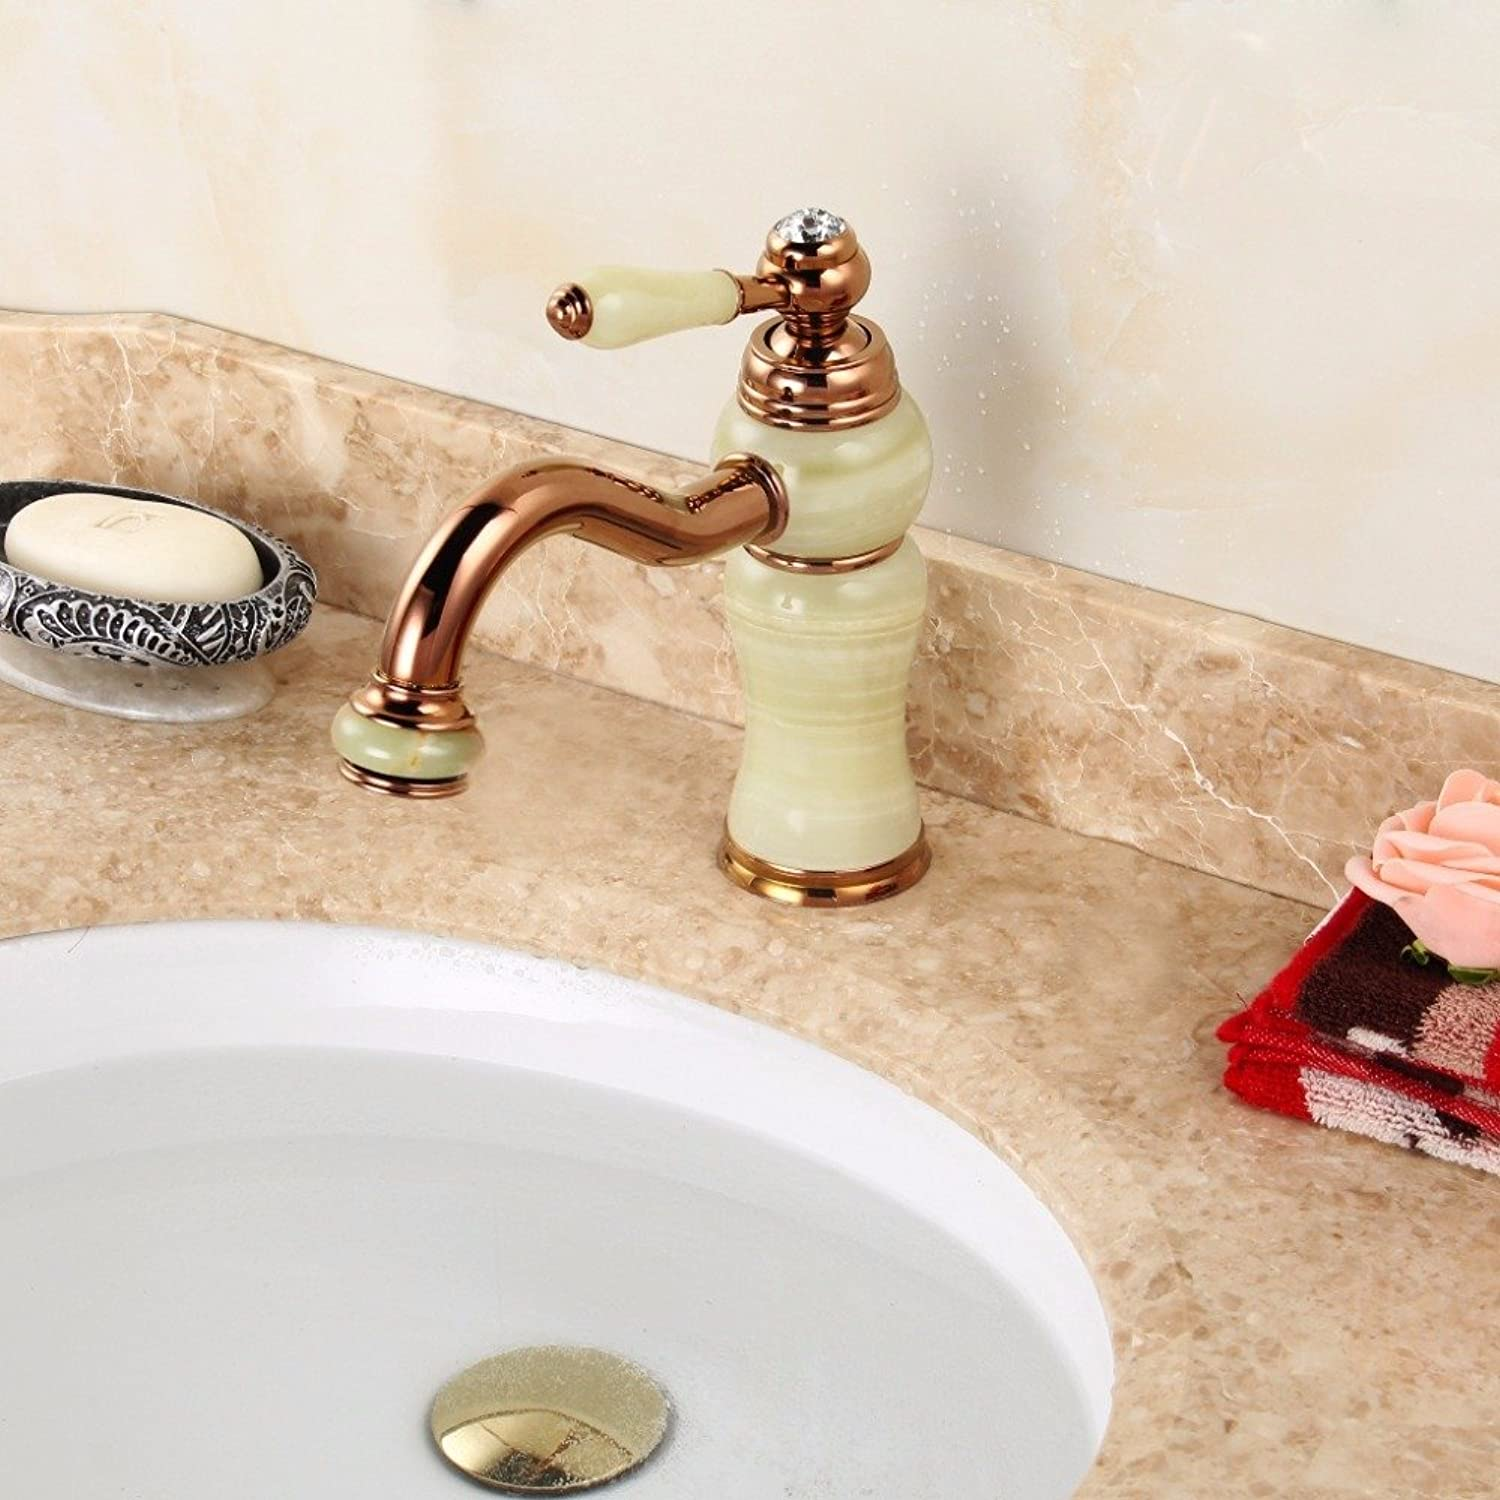 Makej Long Mouth Bathroom Sink Mixer Tap Luxury Marble Handle Marble Body pink gold Brass Basin Faucet